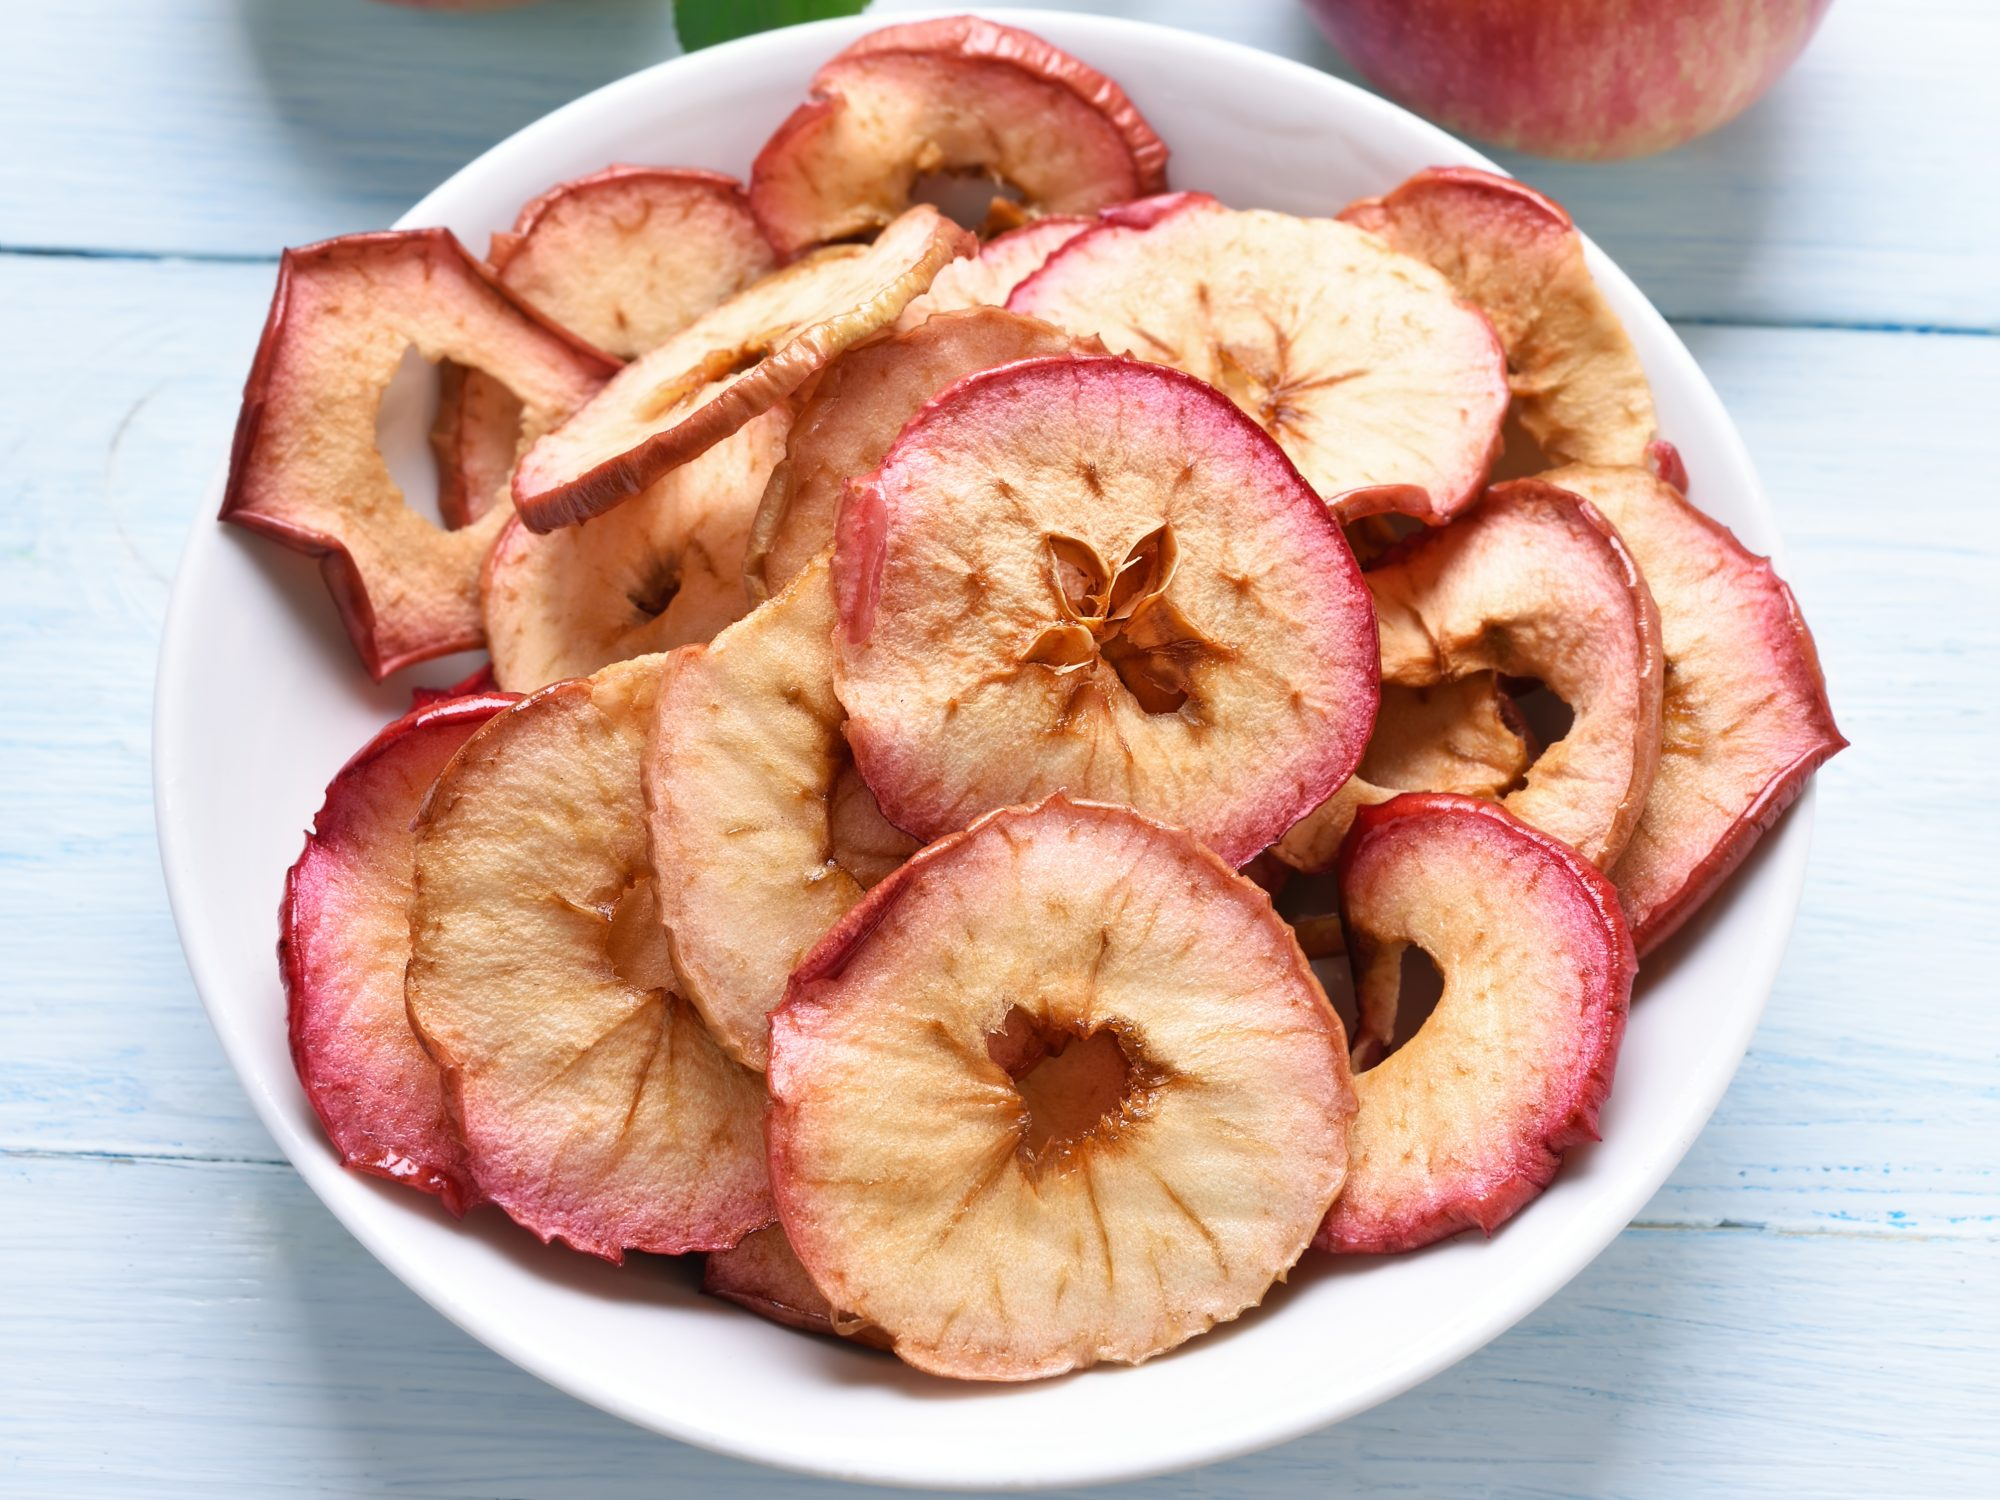 How to dehydrate apples - dehydrating apples guide